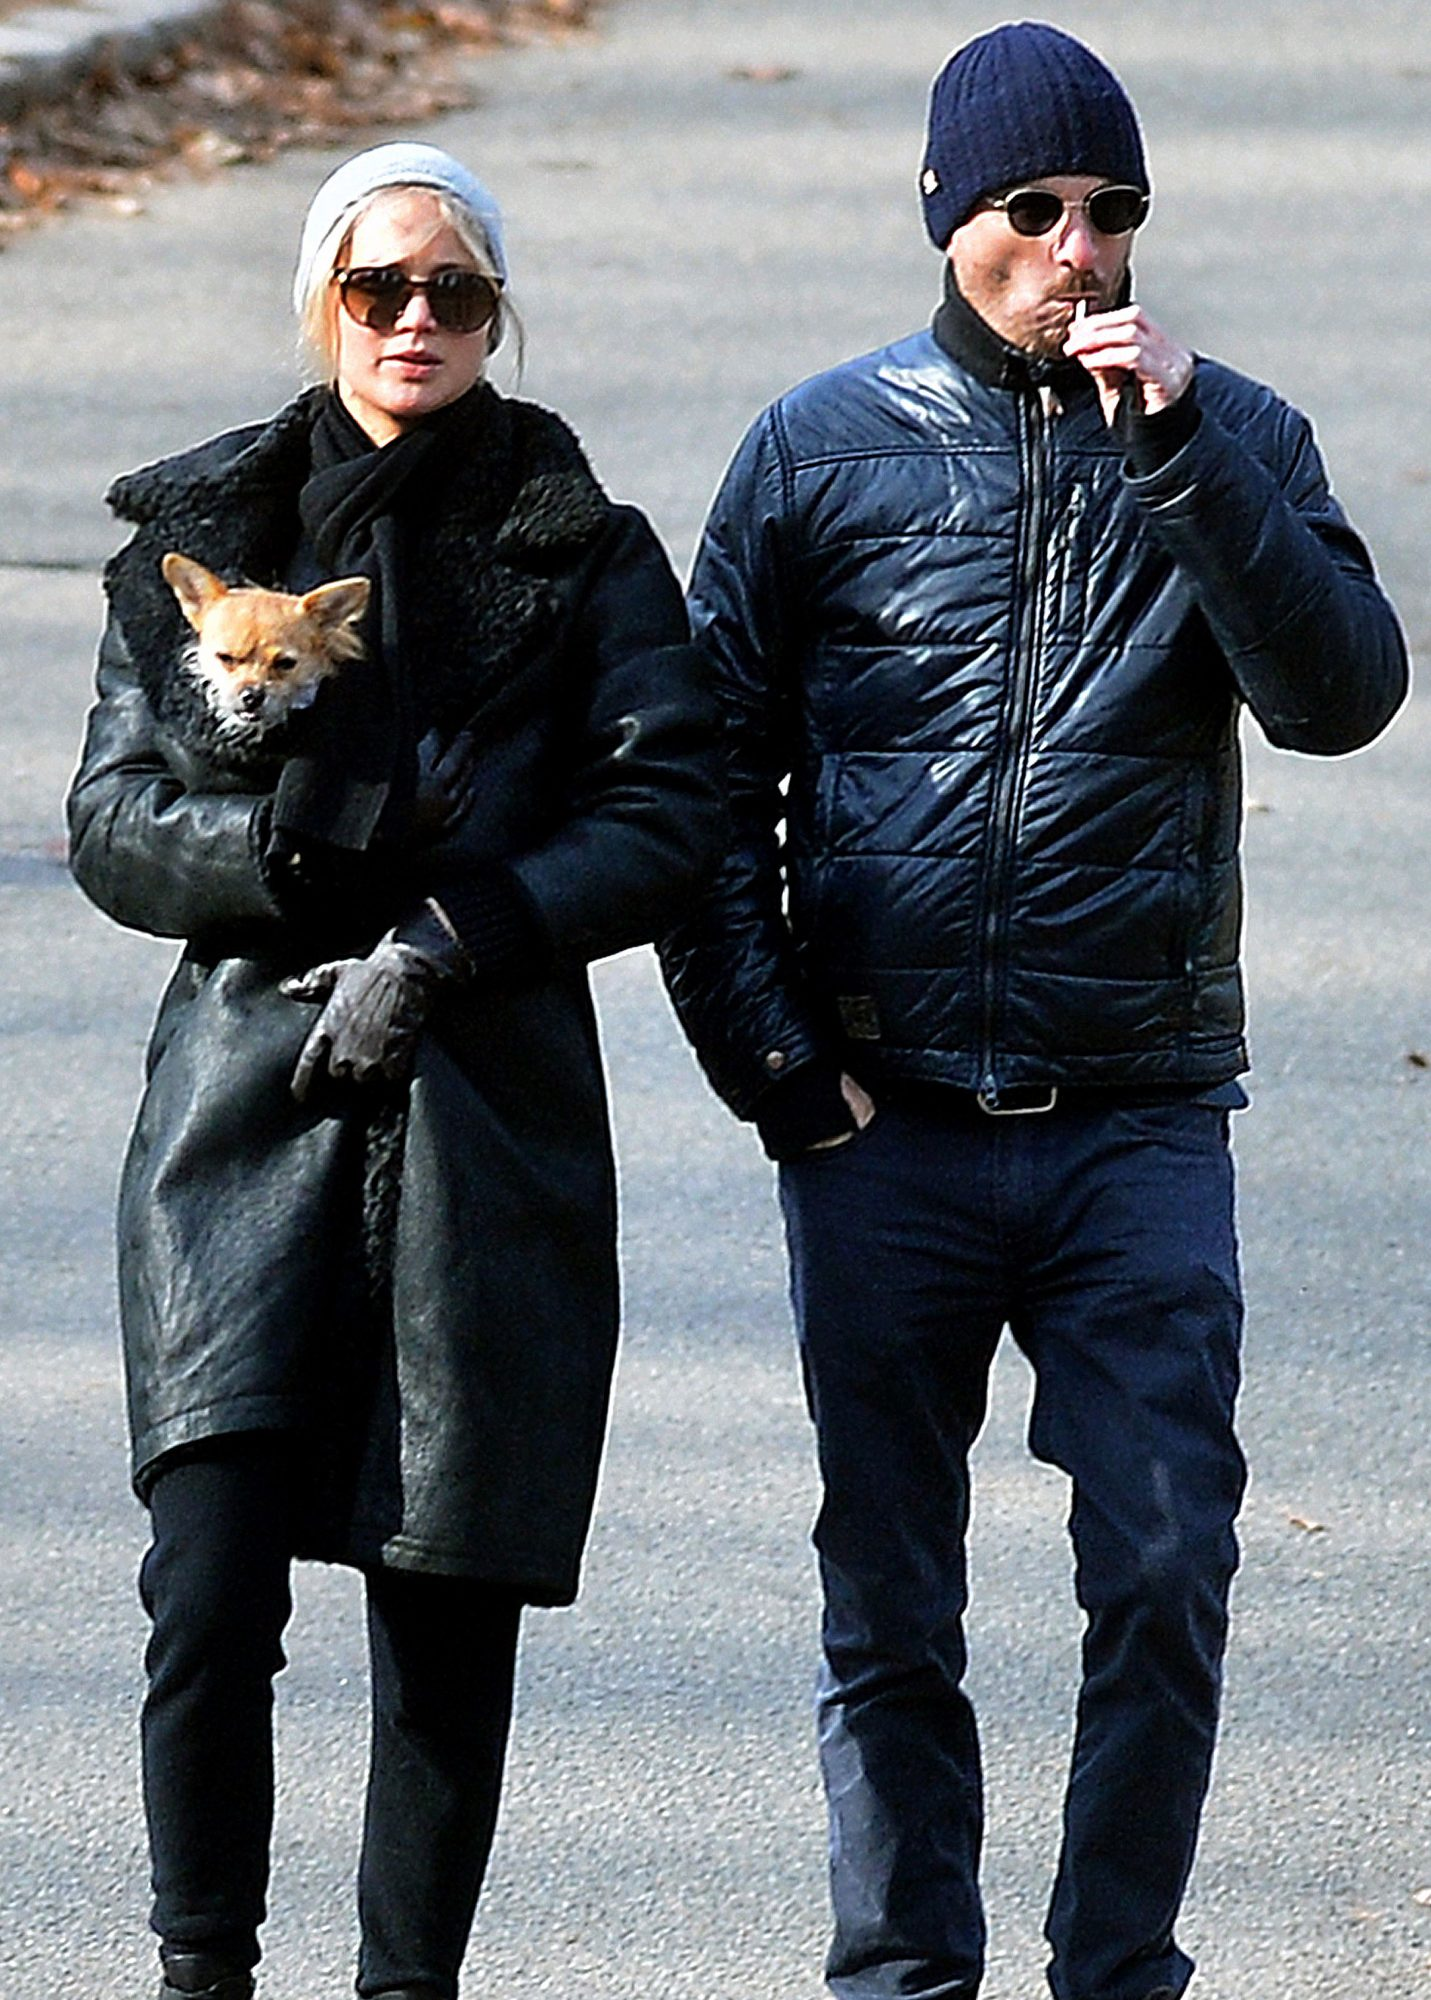 PREMIUM EXCLUSIVE: Jennifer Lawrence and Darren Aronofsky Spend New Years Eve Together in NYC